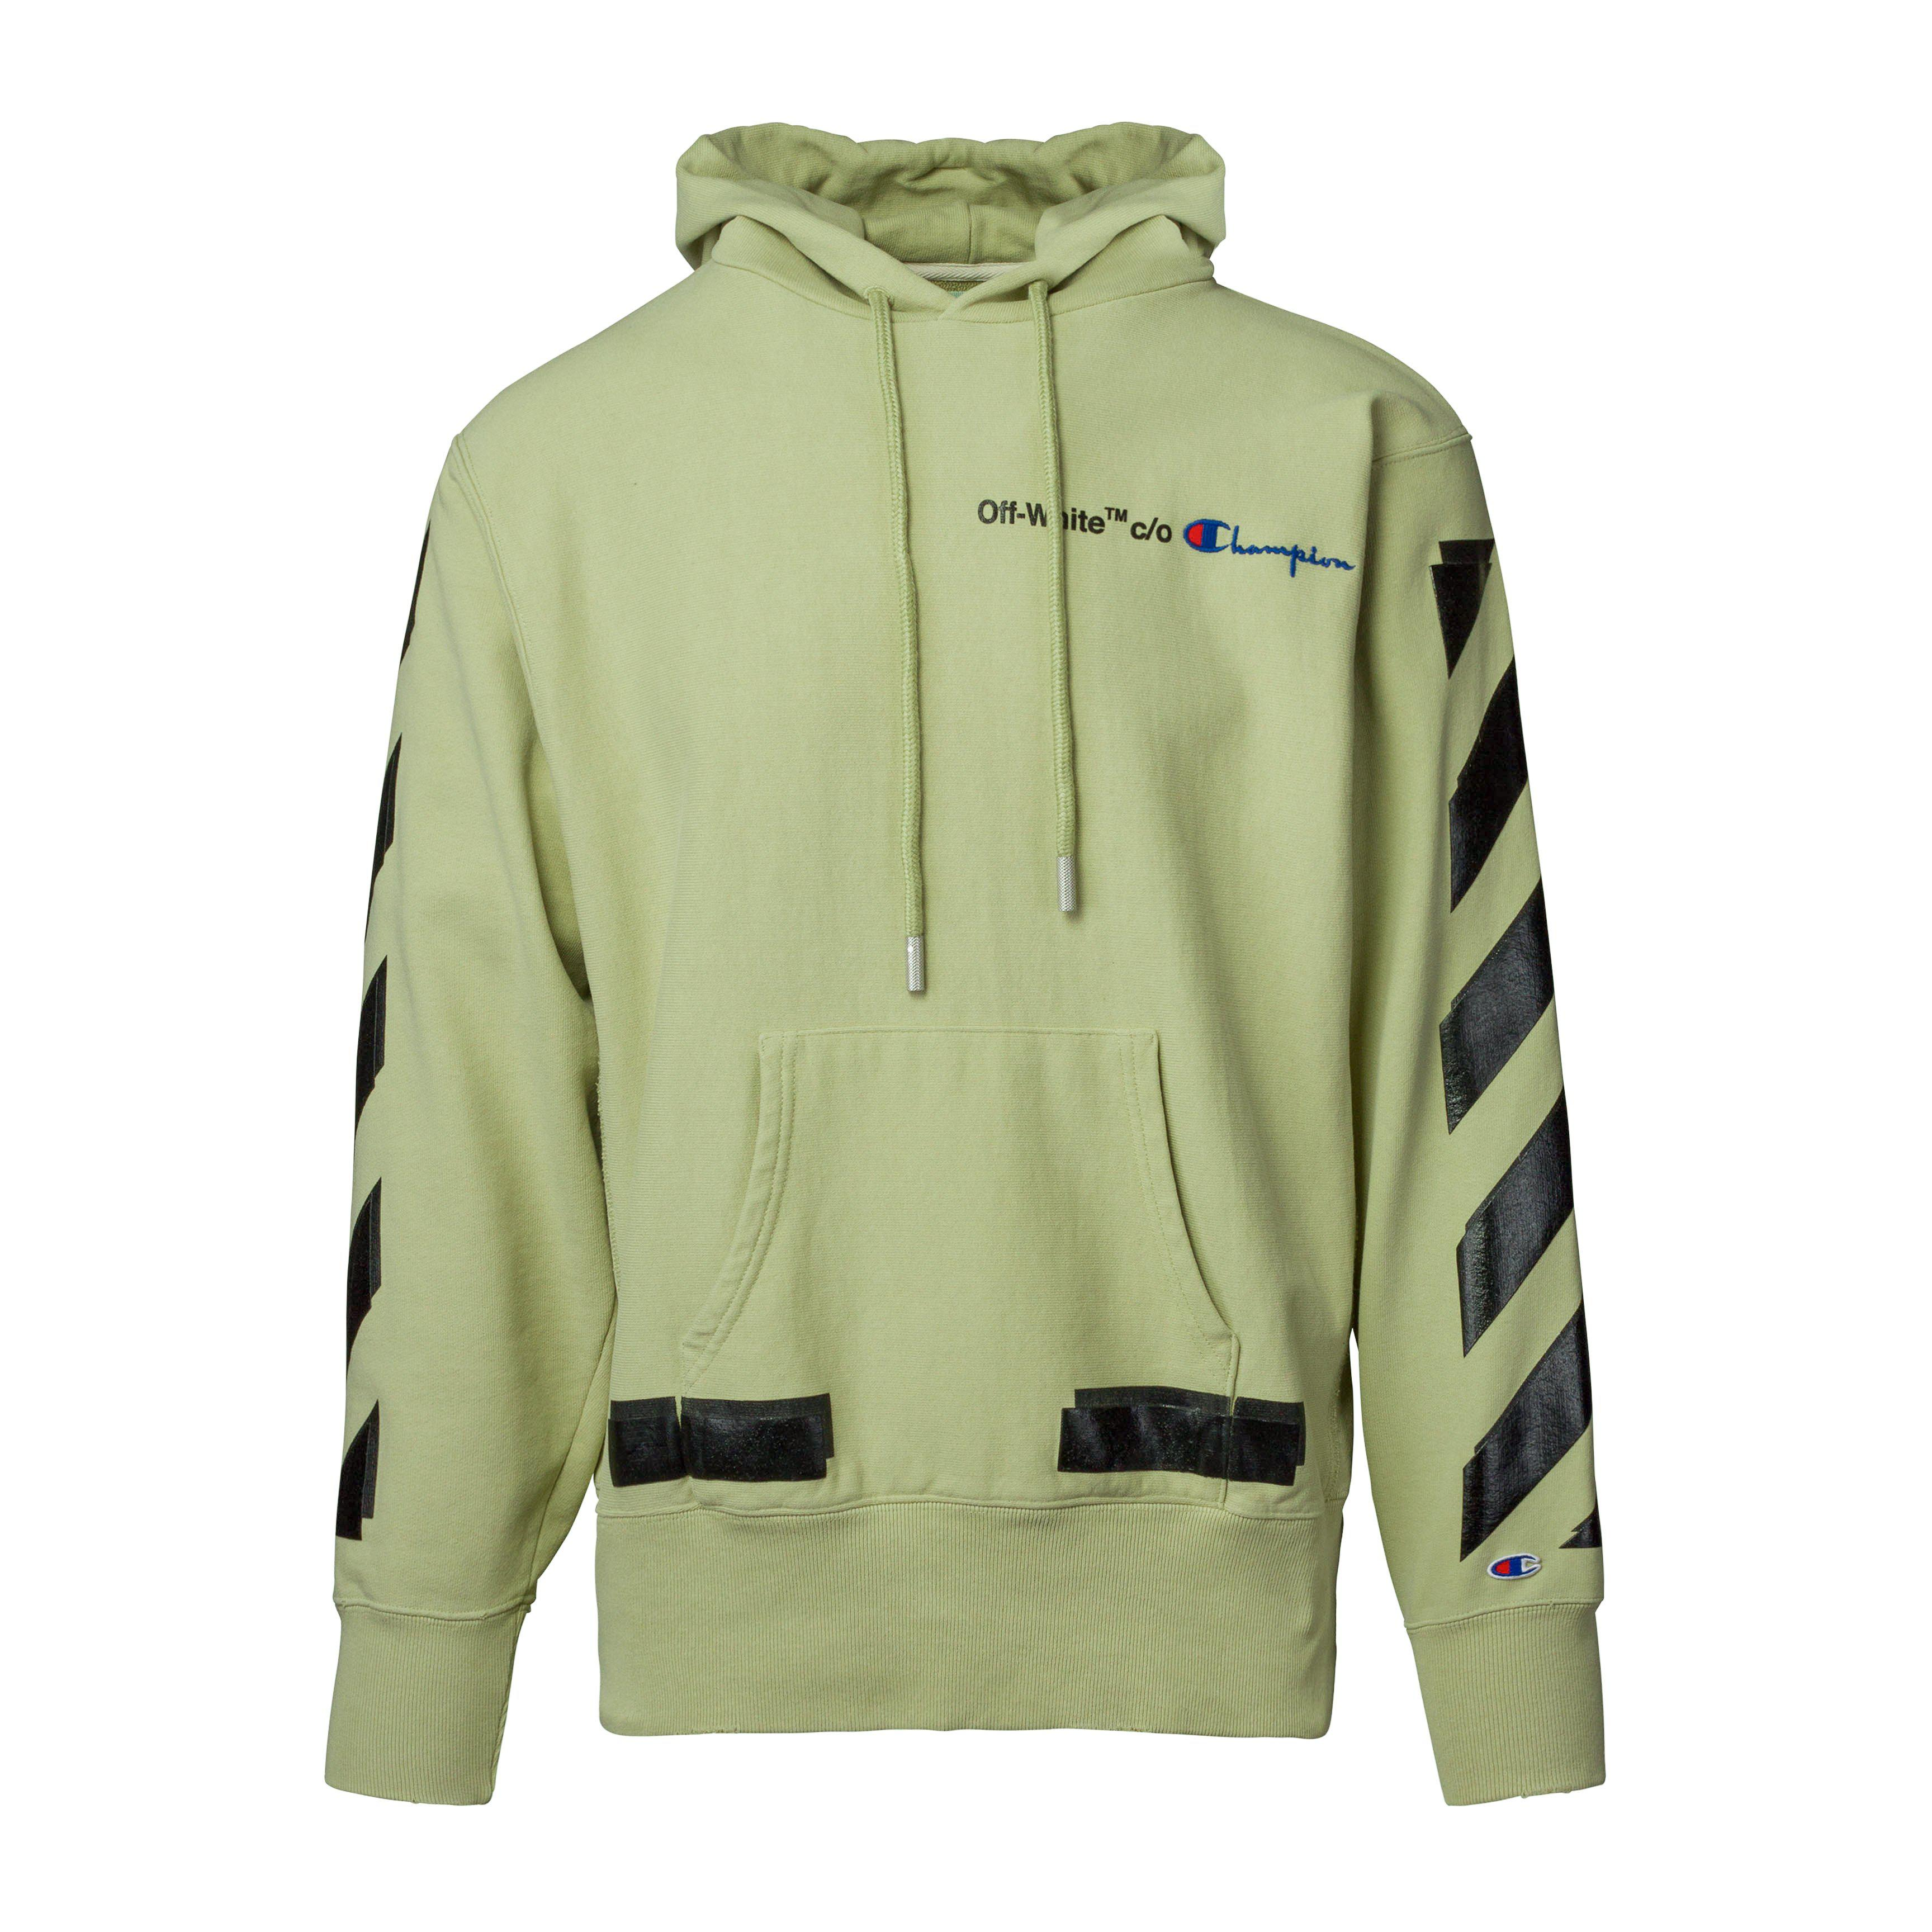 be2474bf Off-White c/o Virgil Abloh Champion Hoodie In Beige in Natural for ...